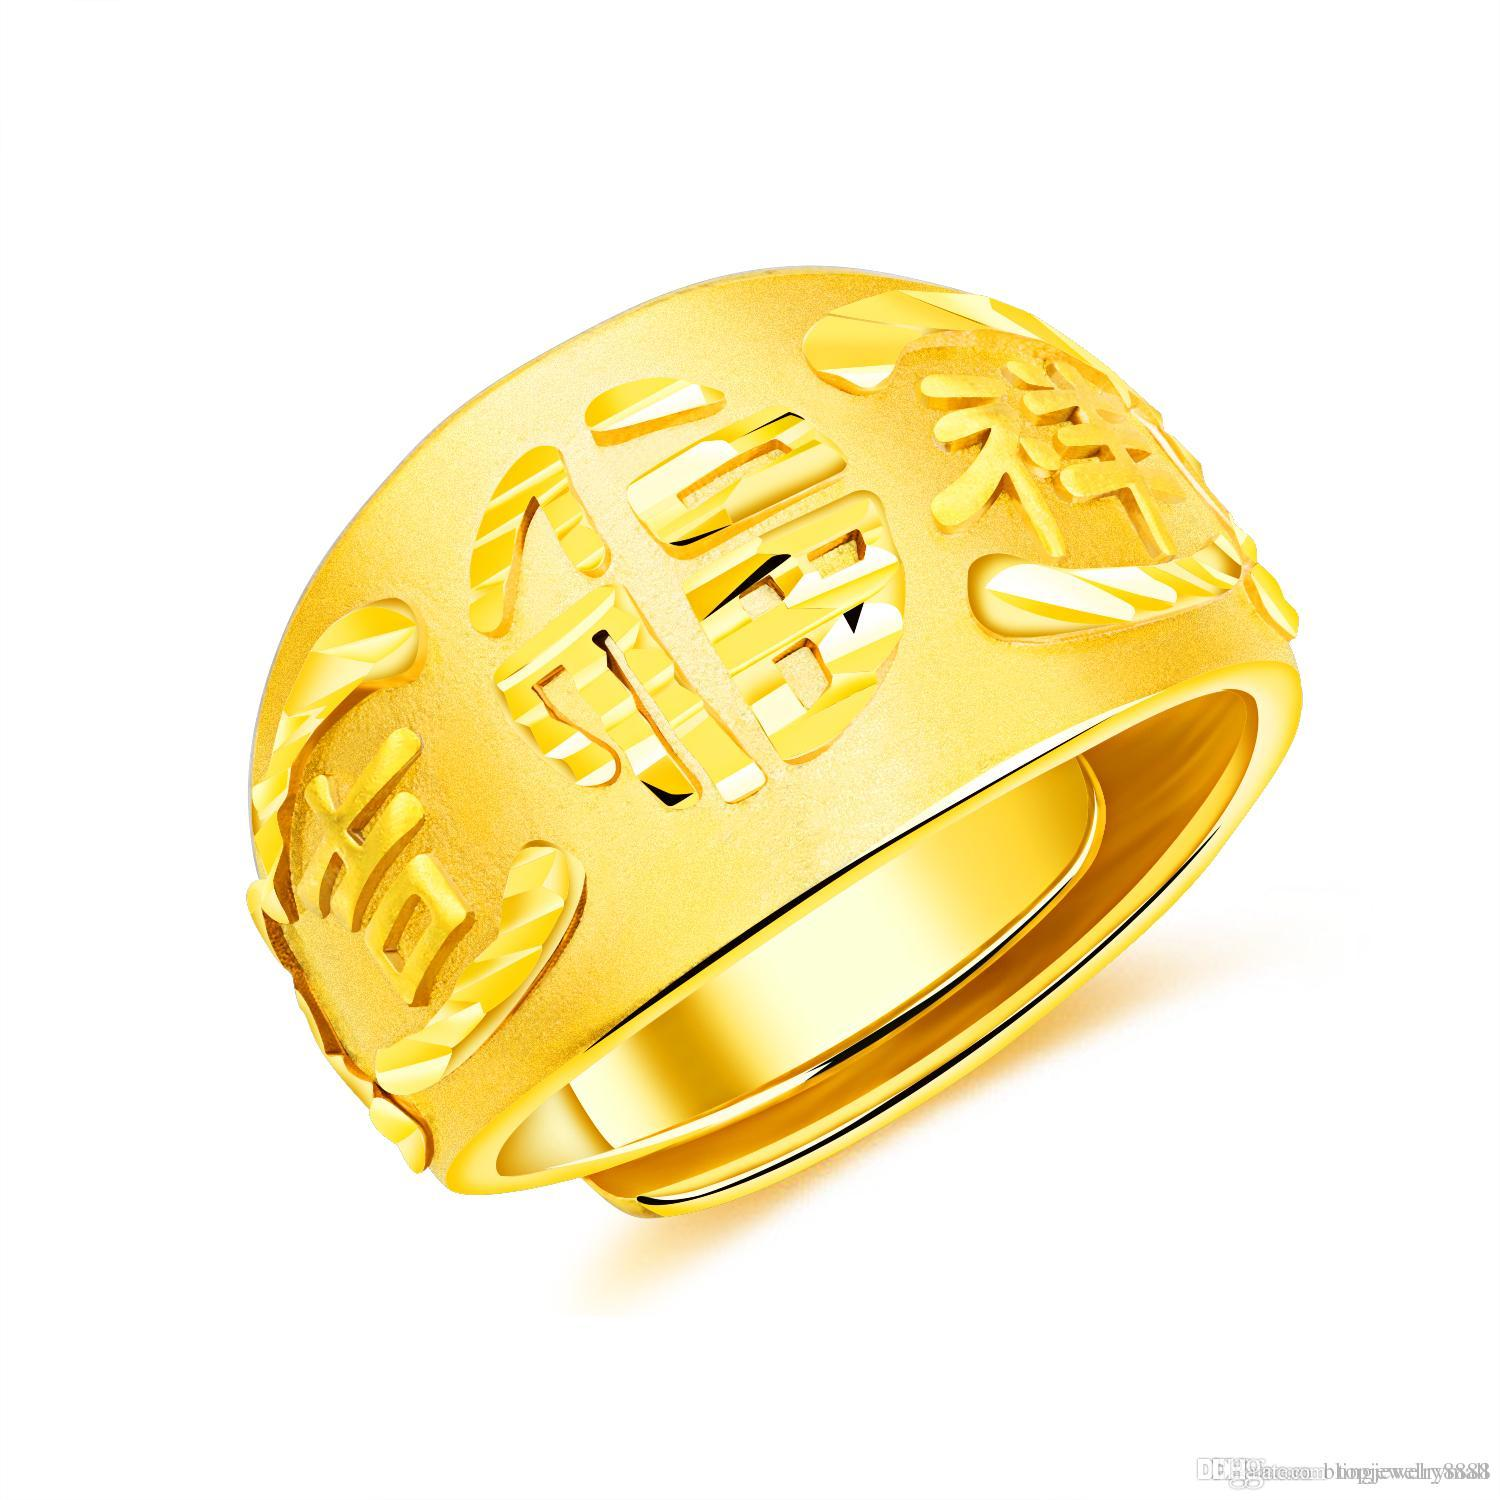 2019 Classic Gold Ring Menwomen Gift Chinese Carving Color 15mm Wide Wedding Bands Rings For Men Jewelry Kj076 From Topjewelry8888: Chinese Man Wedding Band At Websimilar.org